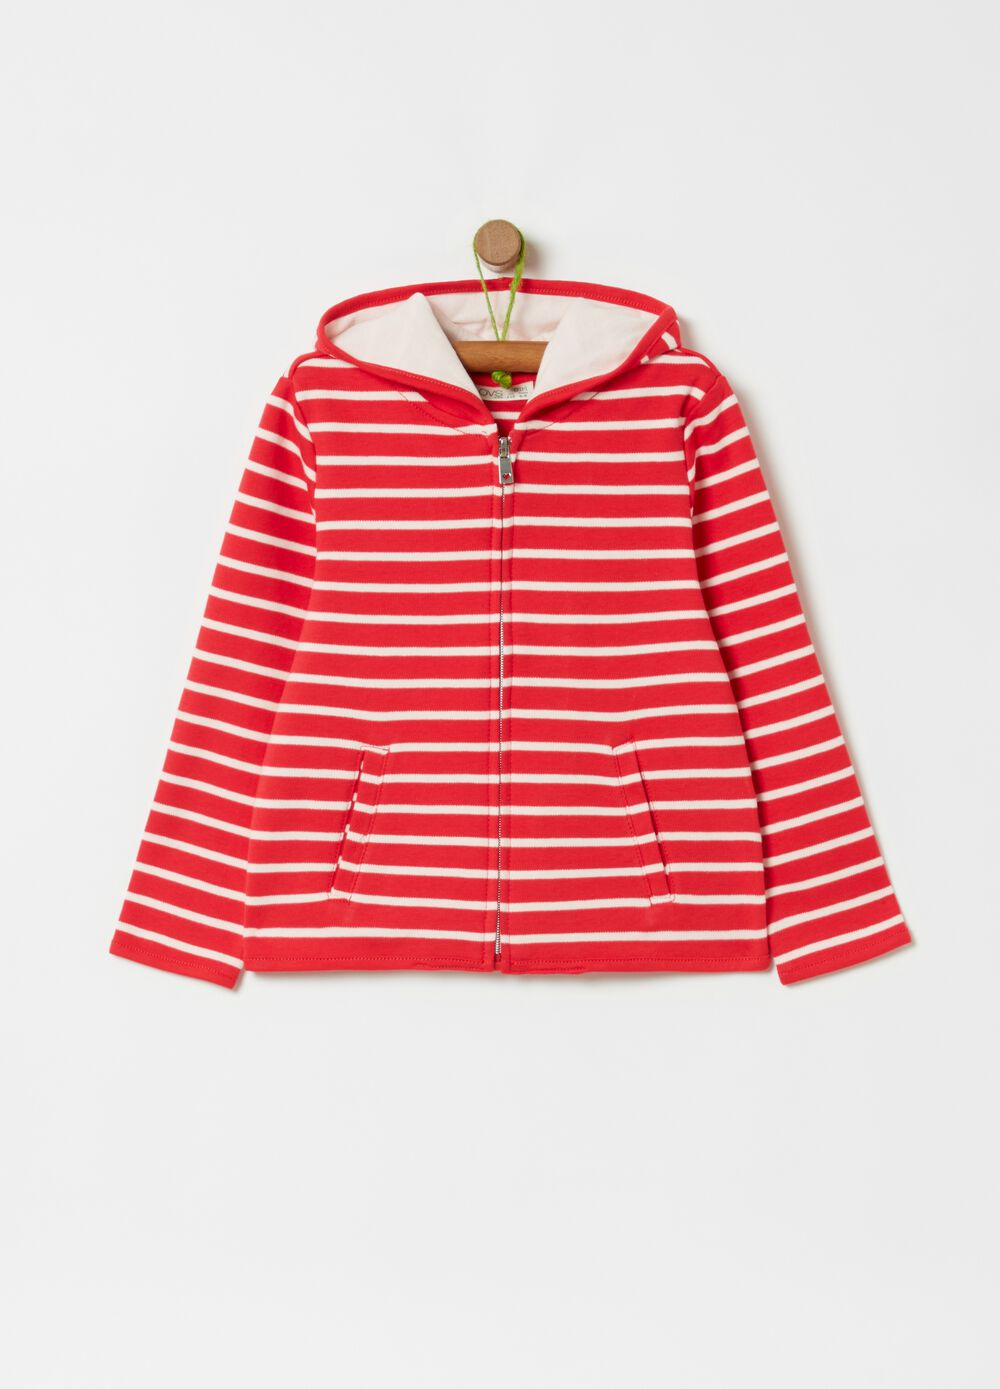 100% cotton sweatshirt with stripes